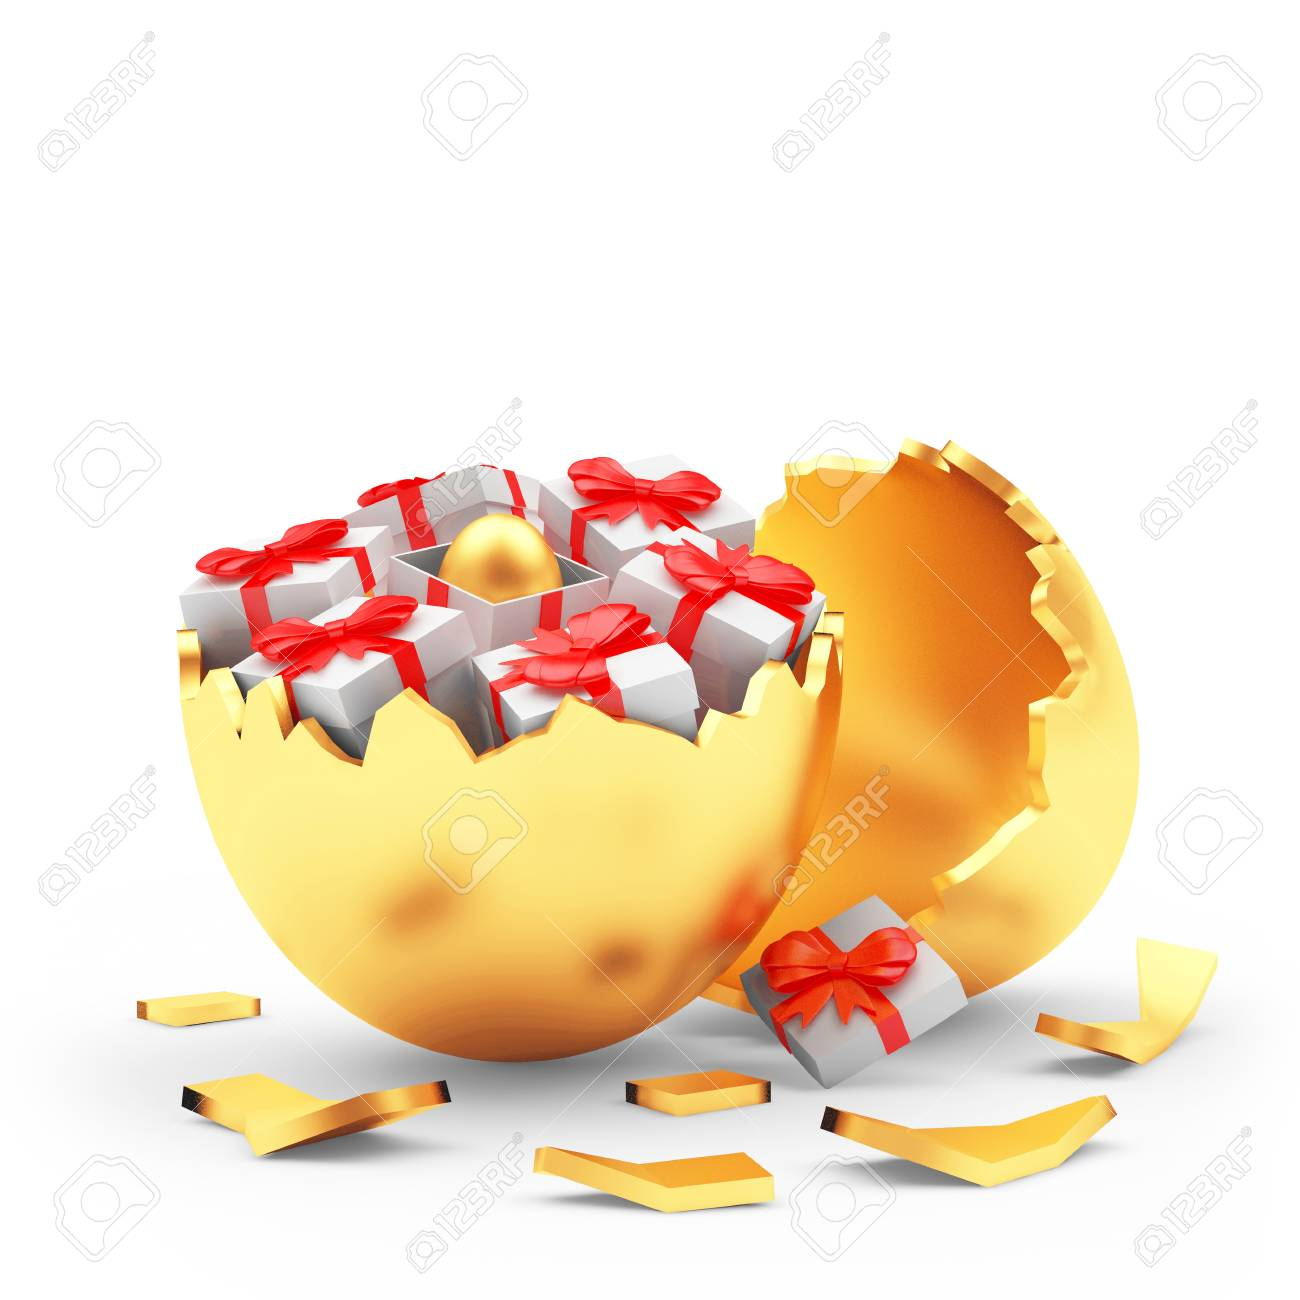 Broken golden egg shall and gift boxes with easter egg inside broken golden egg shall and gift boxes with easter egg inside 3d illustration stock illustration negle Gallery